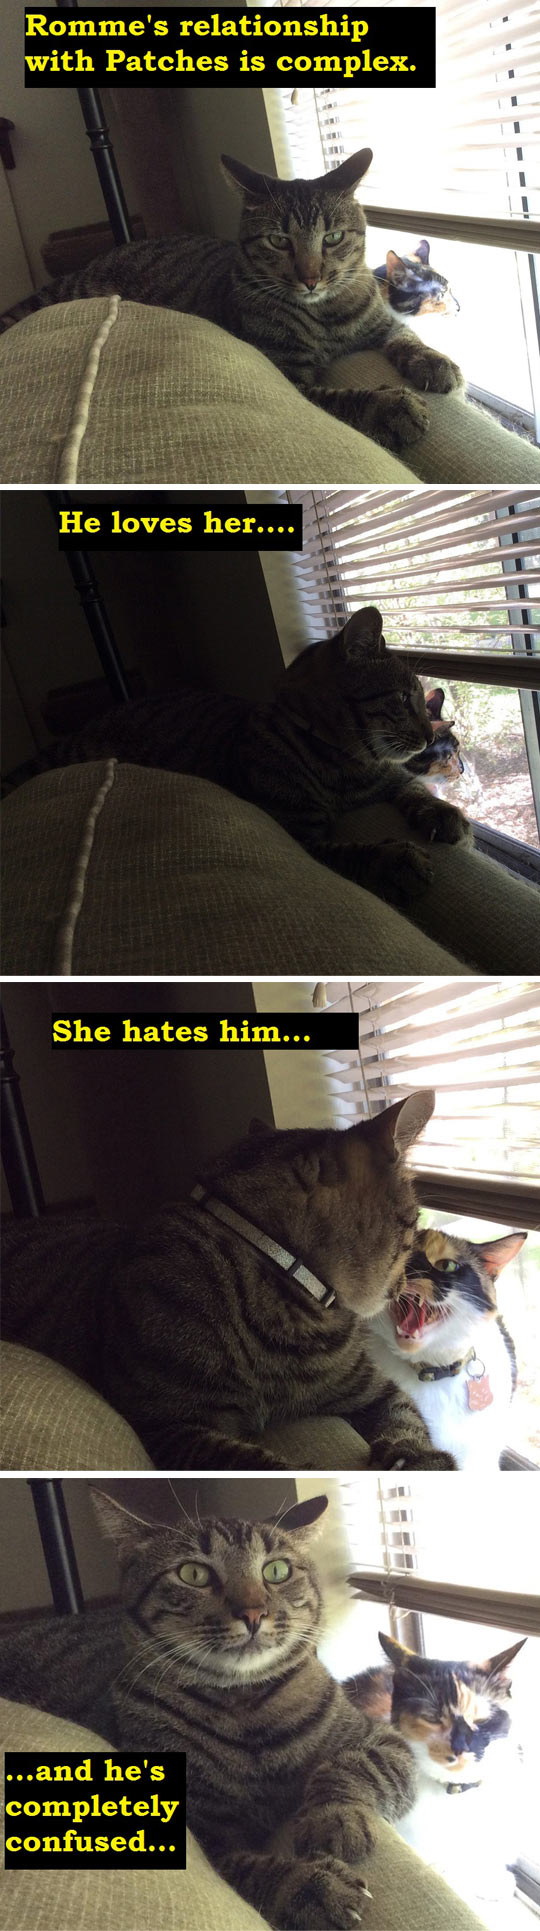 funny-cat-couch-friend-windows